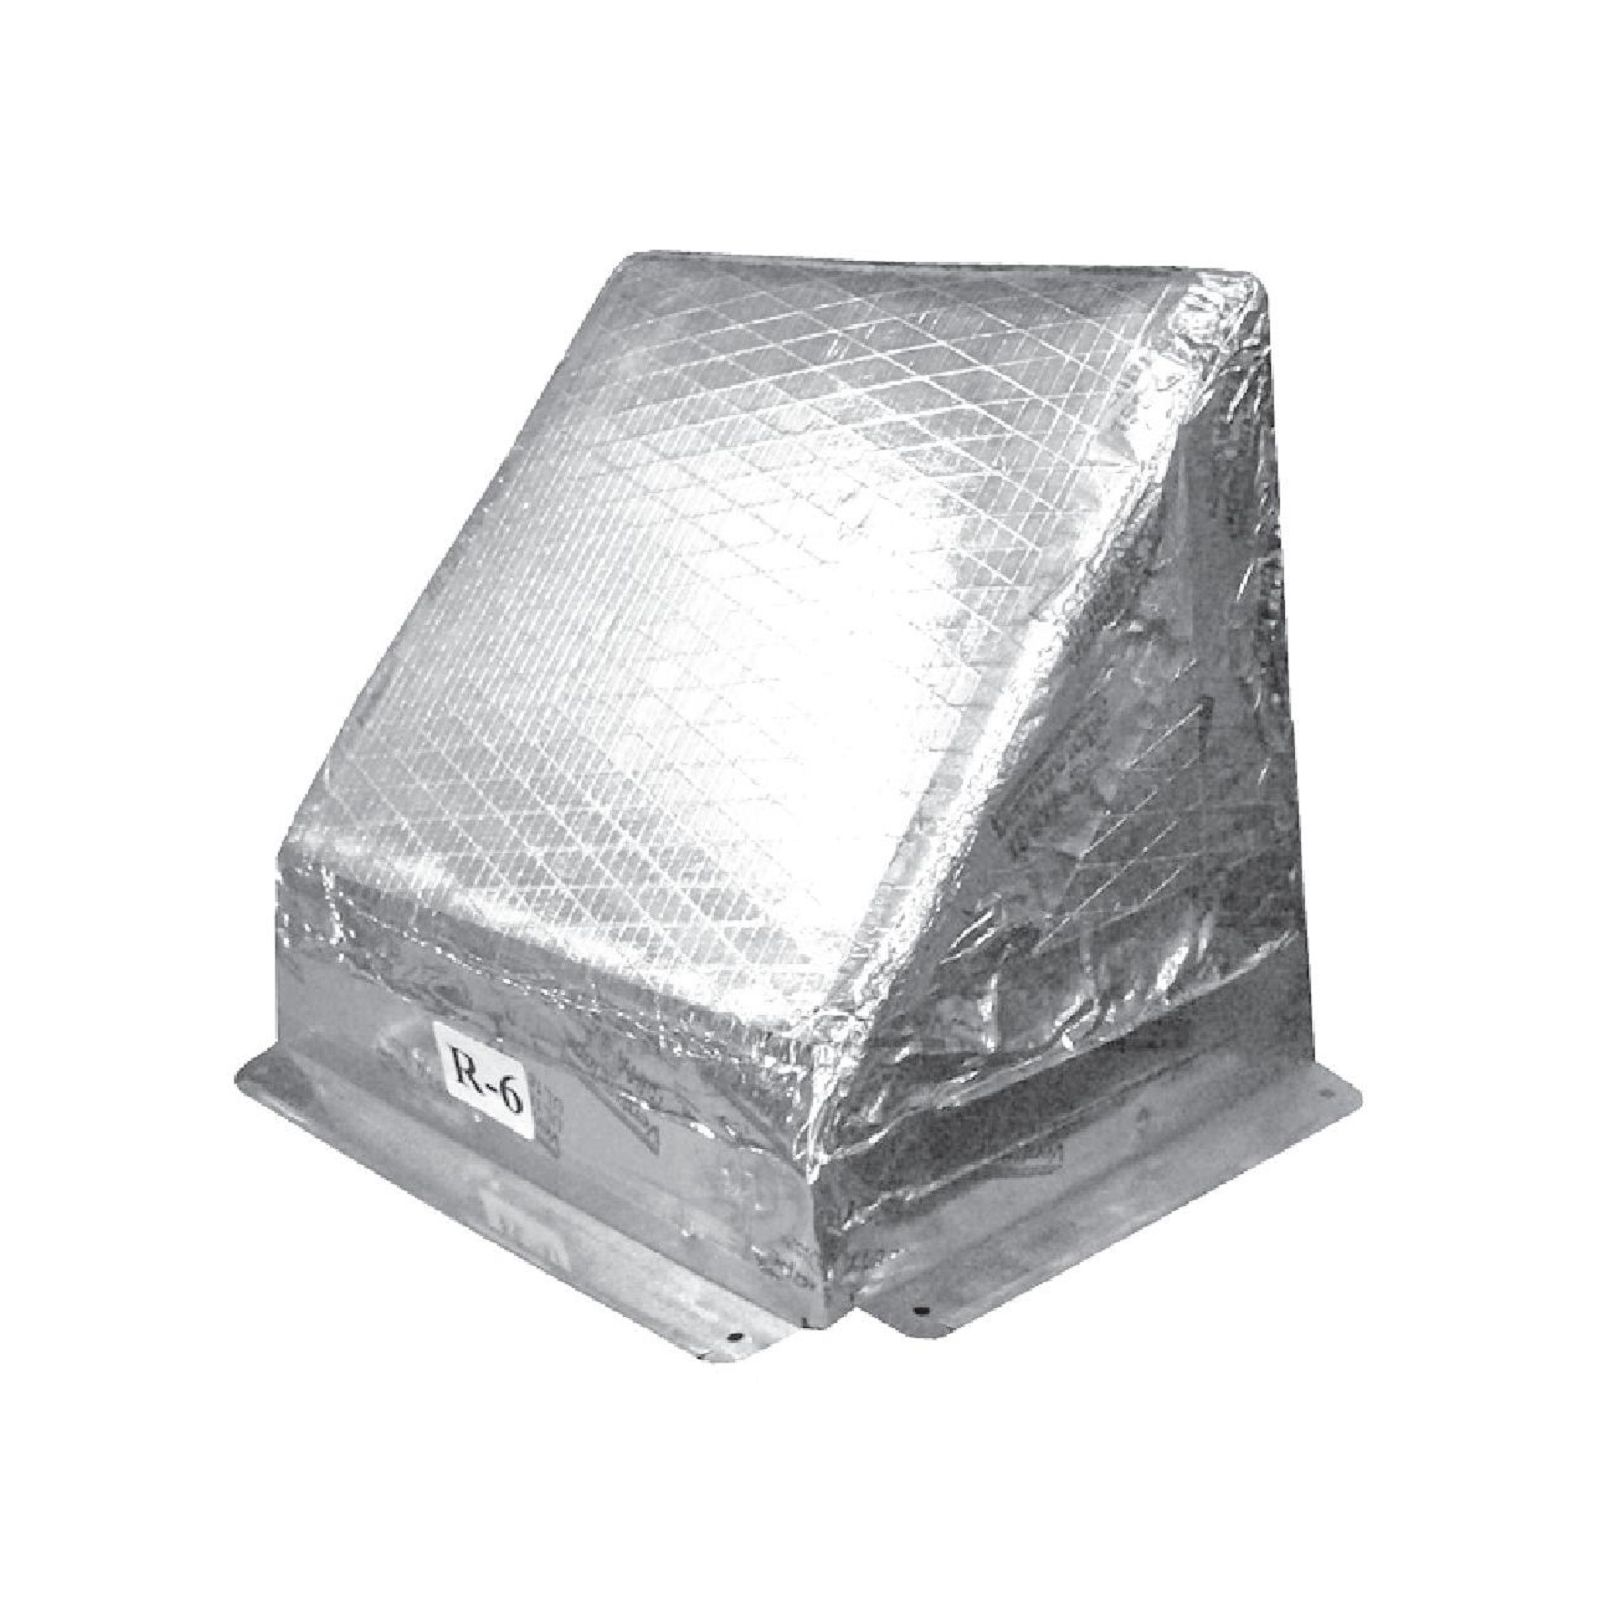 "Snap-Rite 10X06-3800FS - Foil Top Insulated 45 Degree Slant Register Box With Flange, 10"" x 06"" - R6"